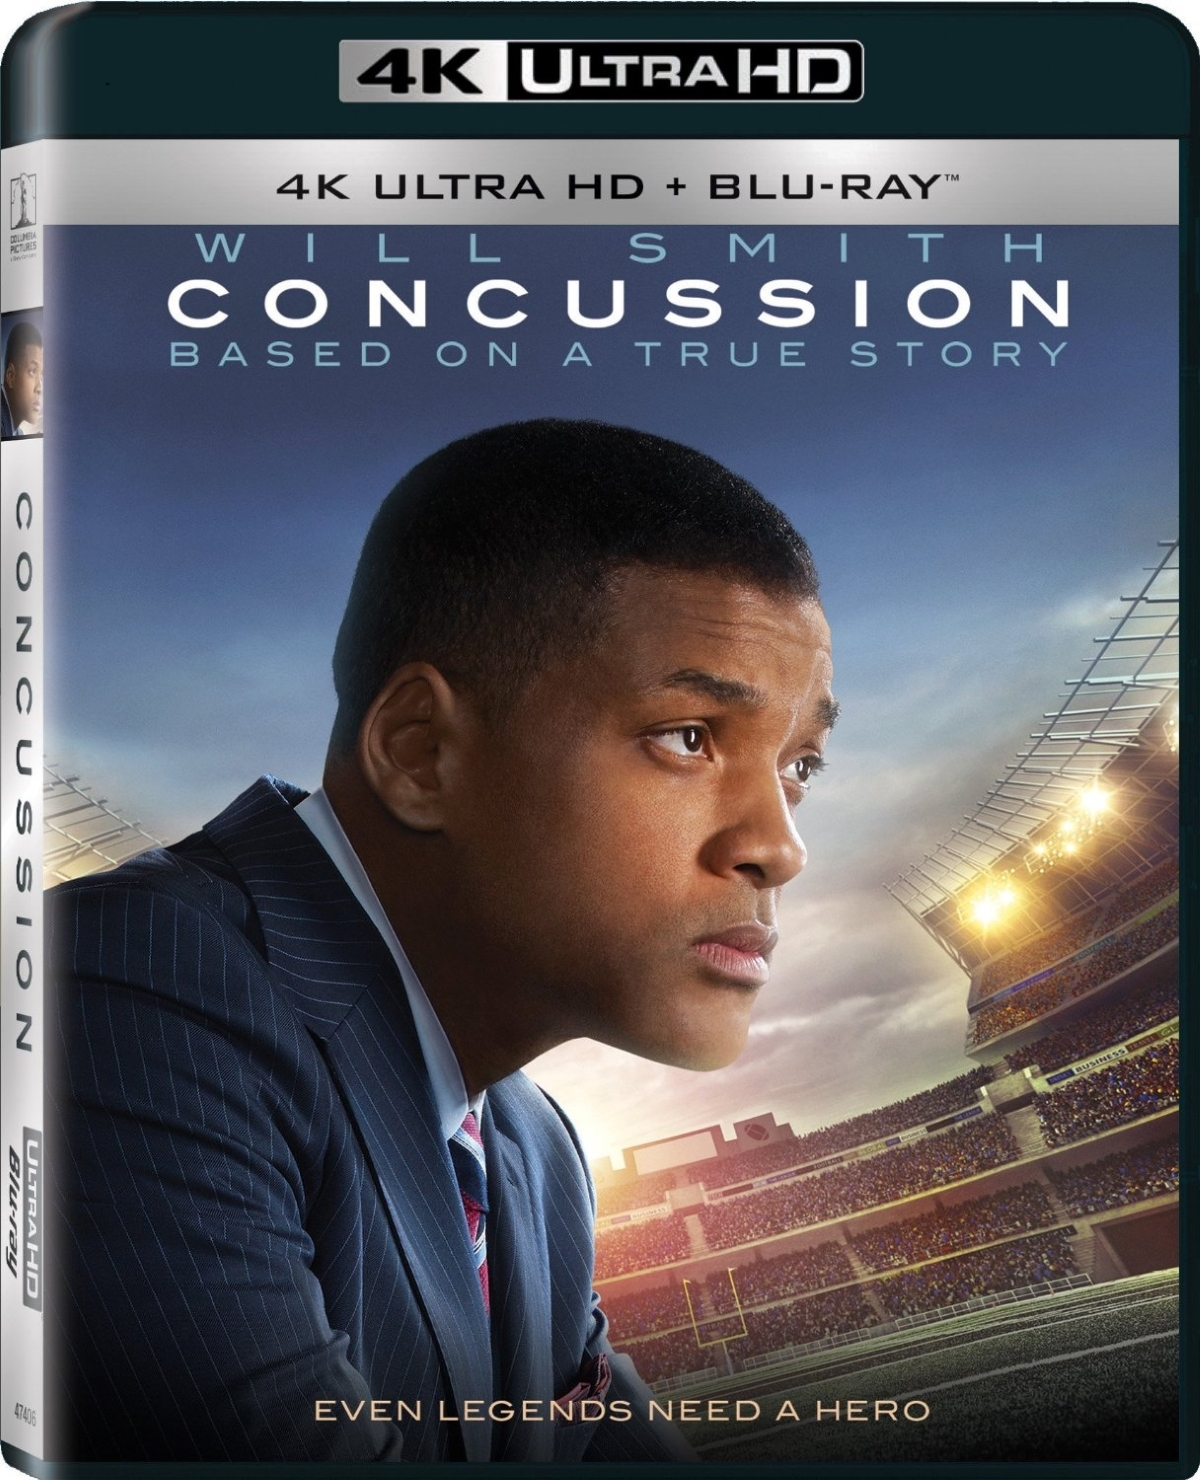 Concussion movie  4k ultra hd   blu ray  2060p ulta high defenition  will smith